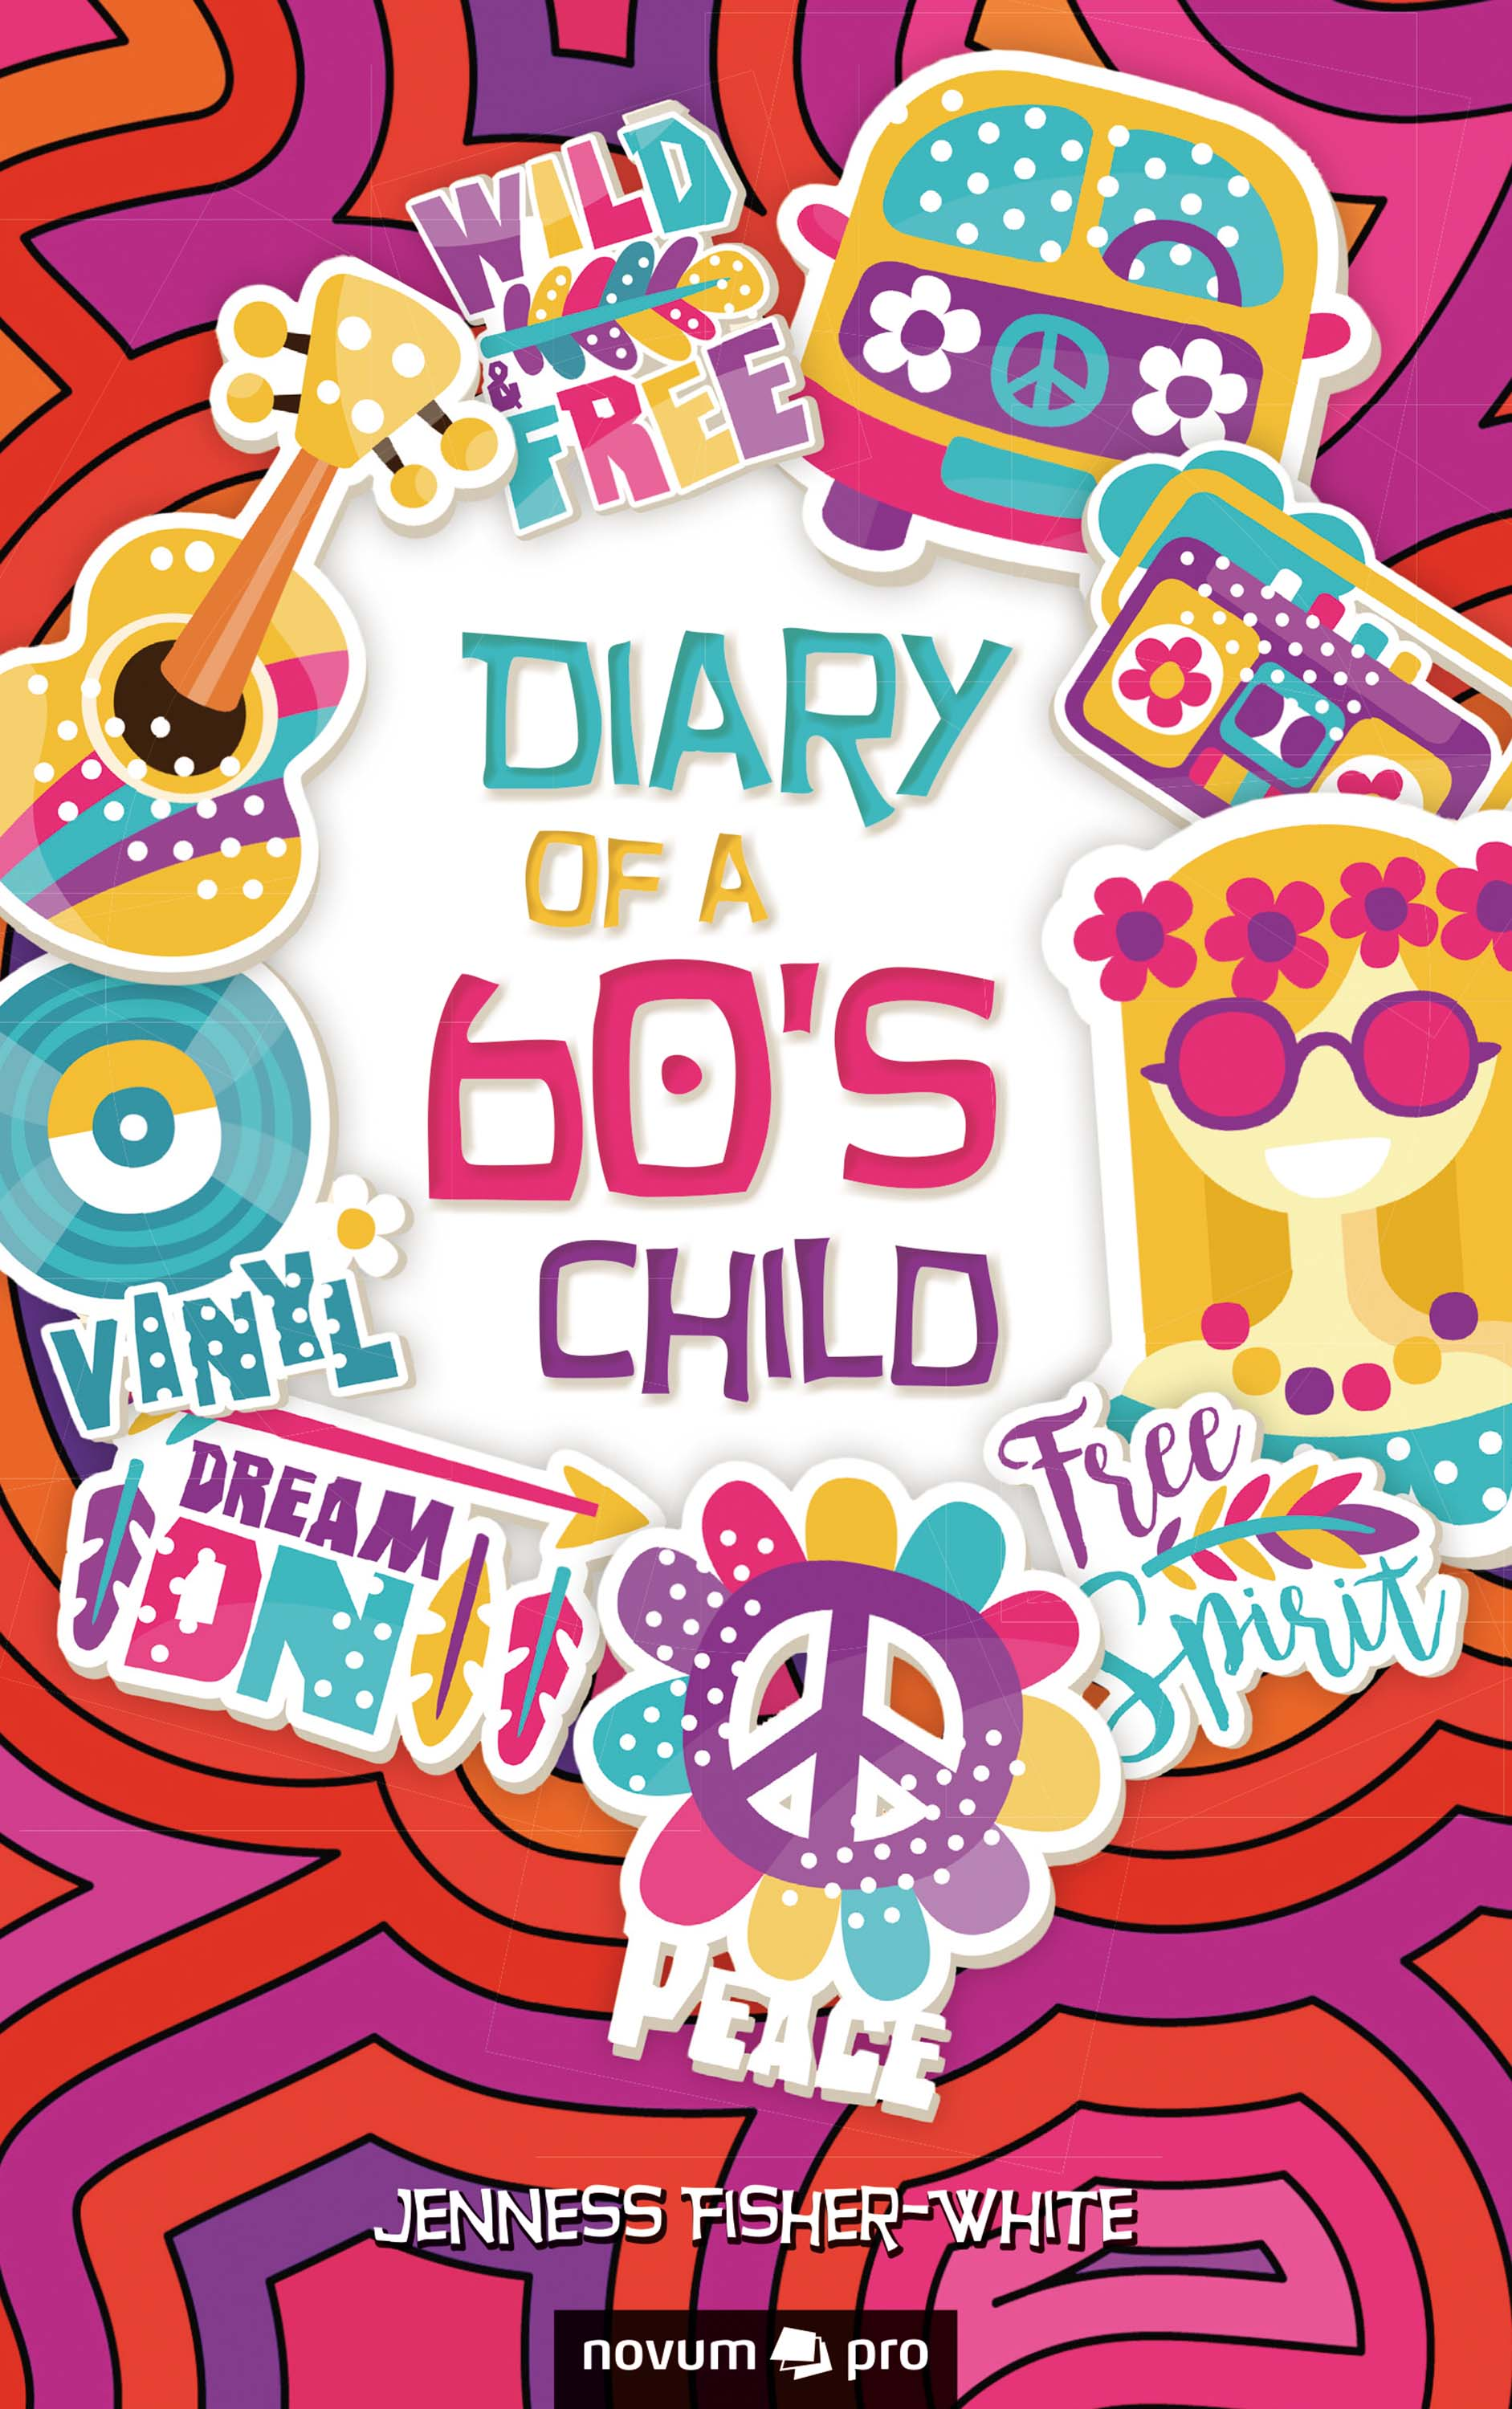 Jenness Fisher-White Diary of a 60's Child a child s garden